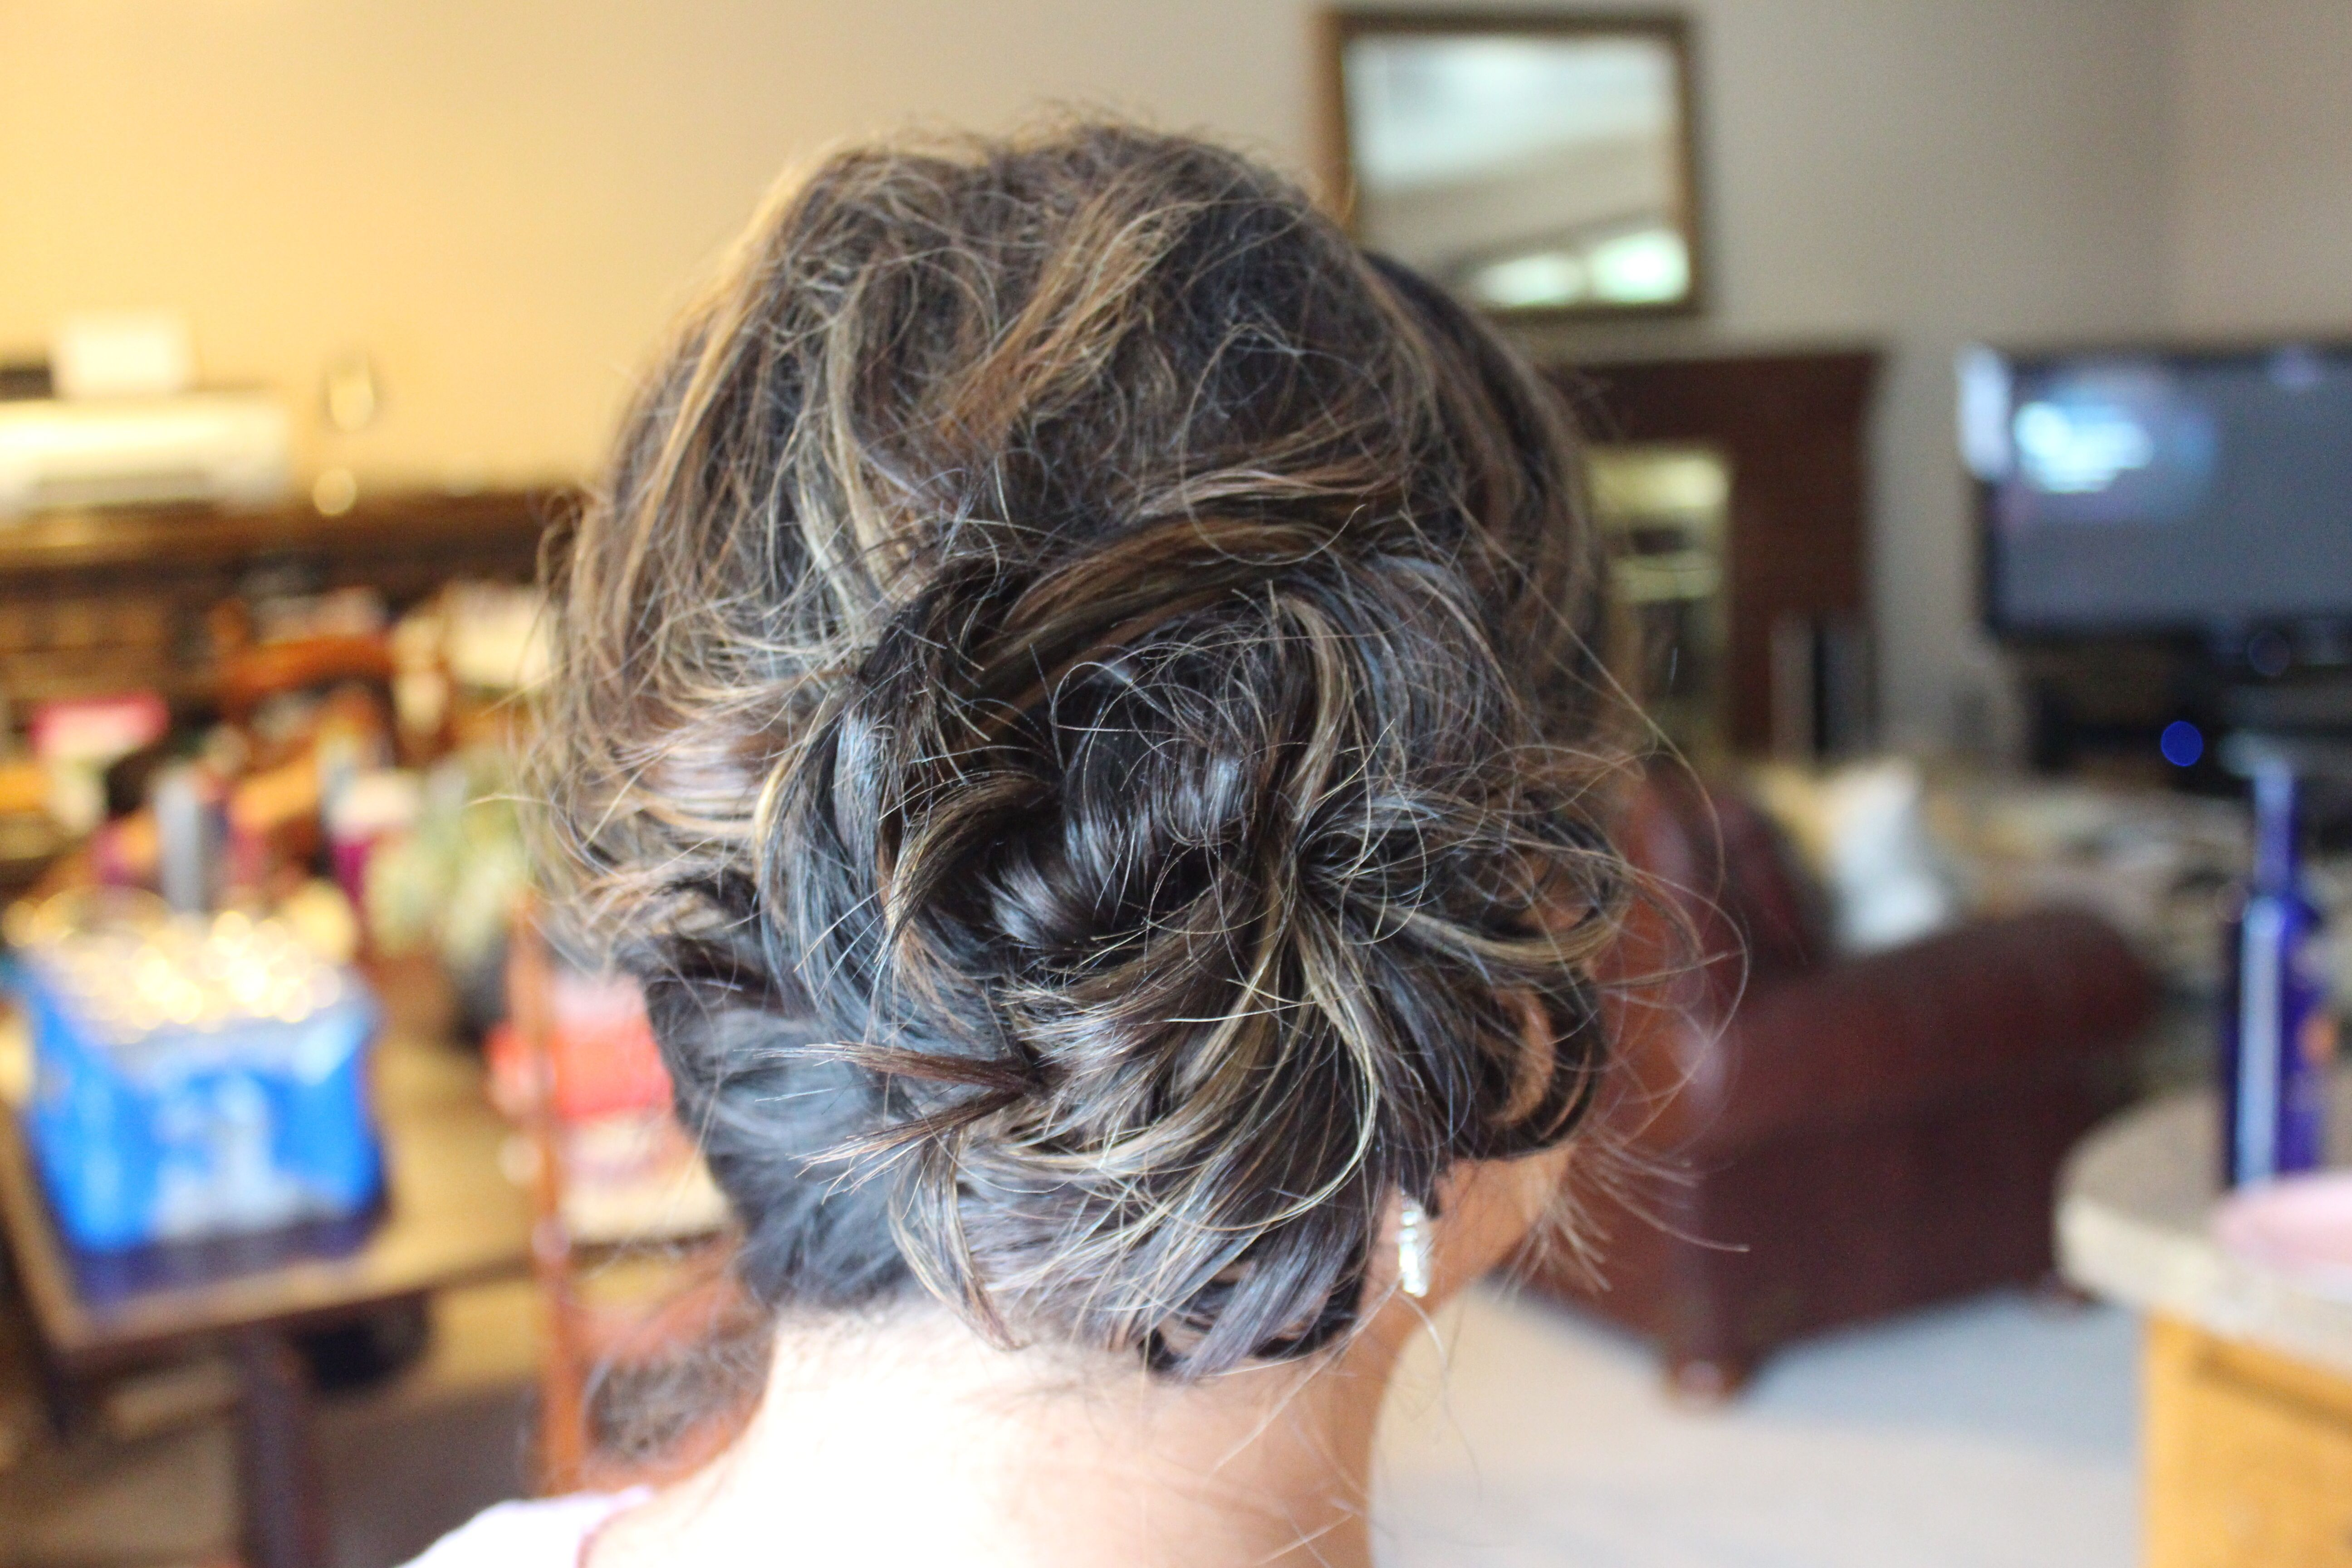 A beautiful side messy bun on shoulder length hair completes this